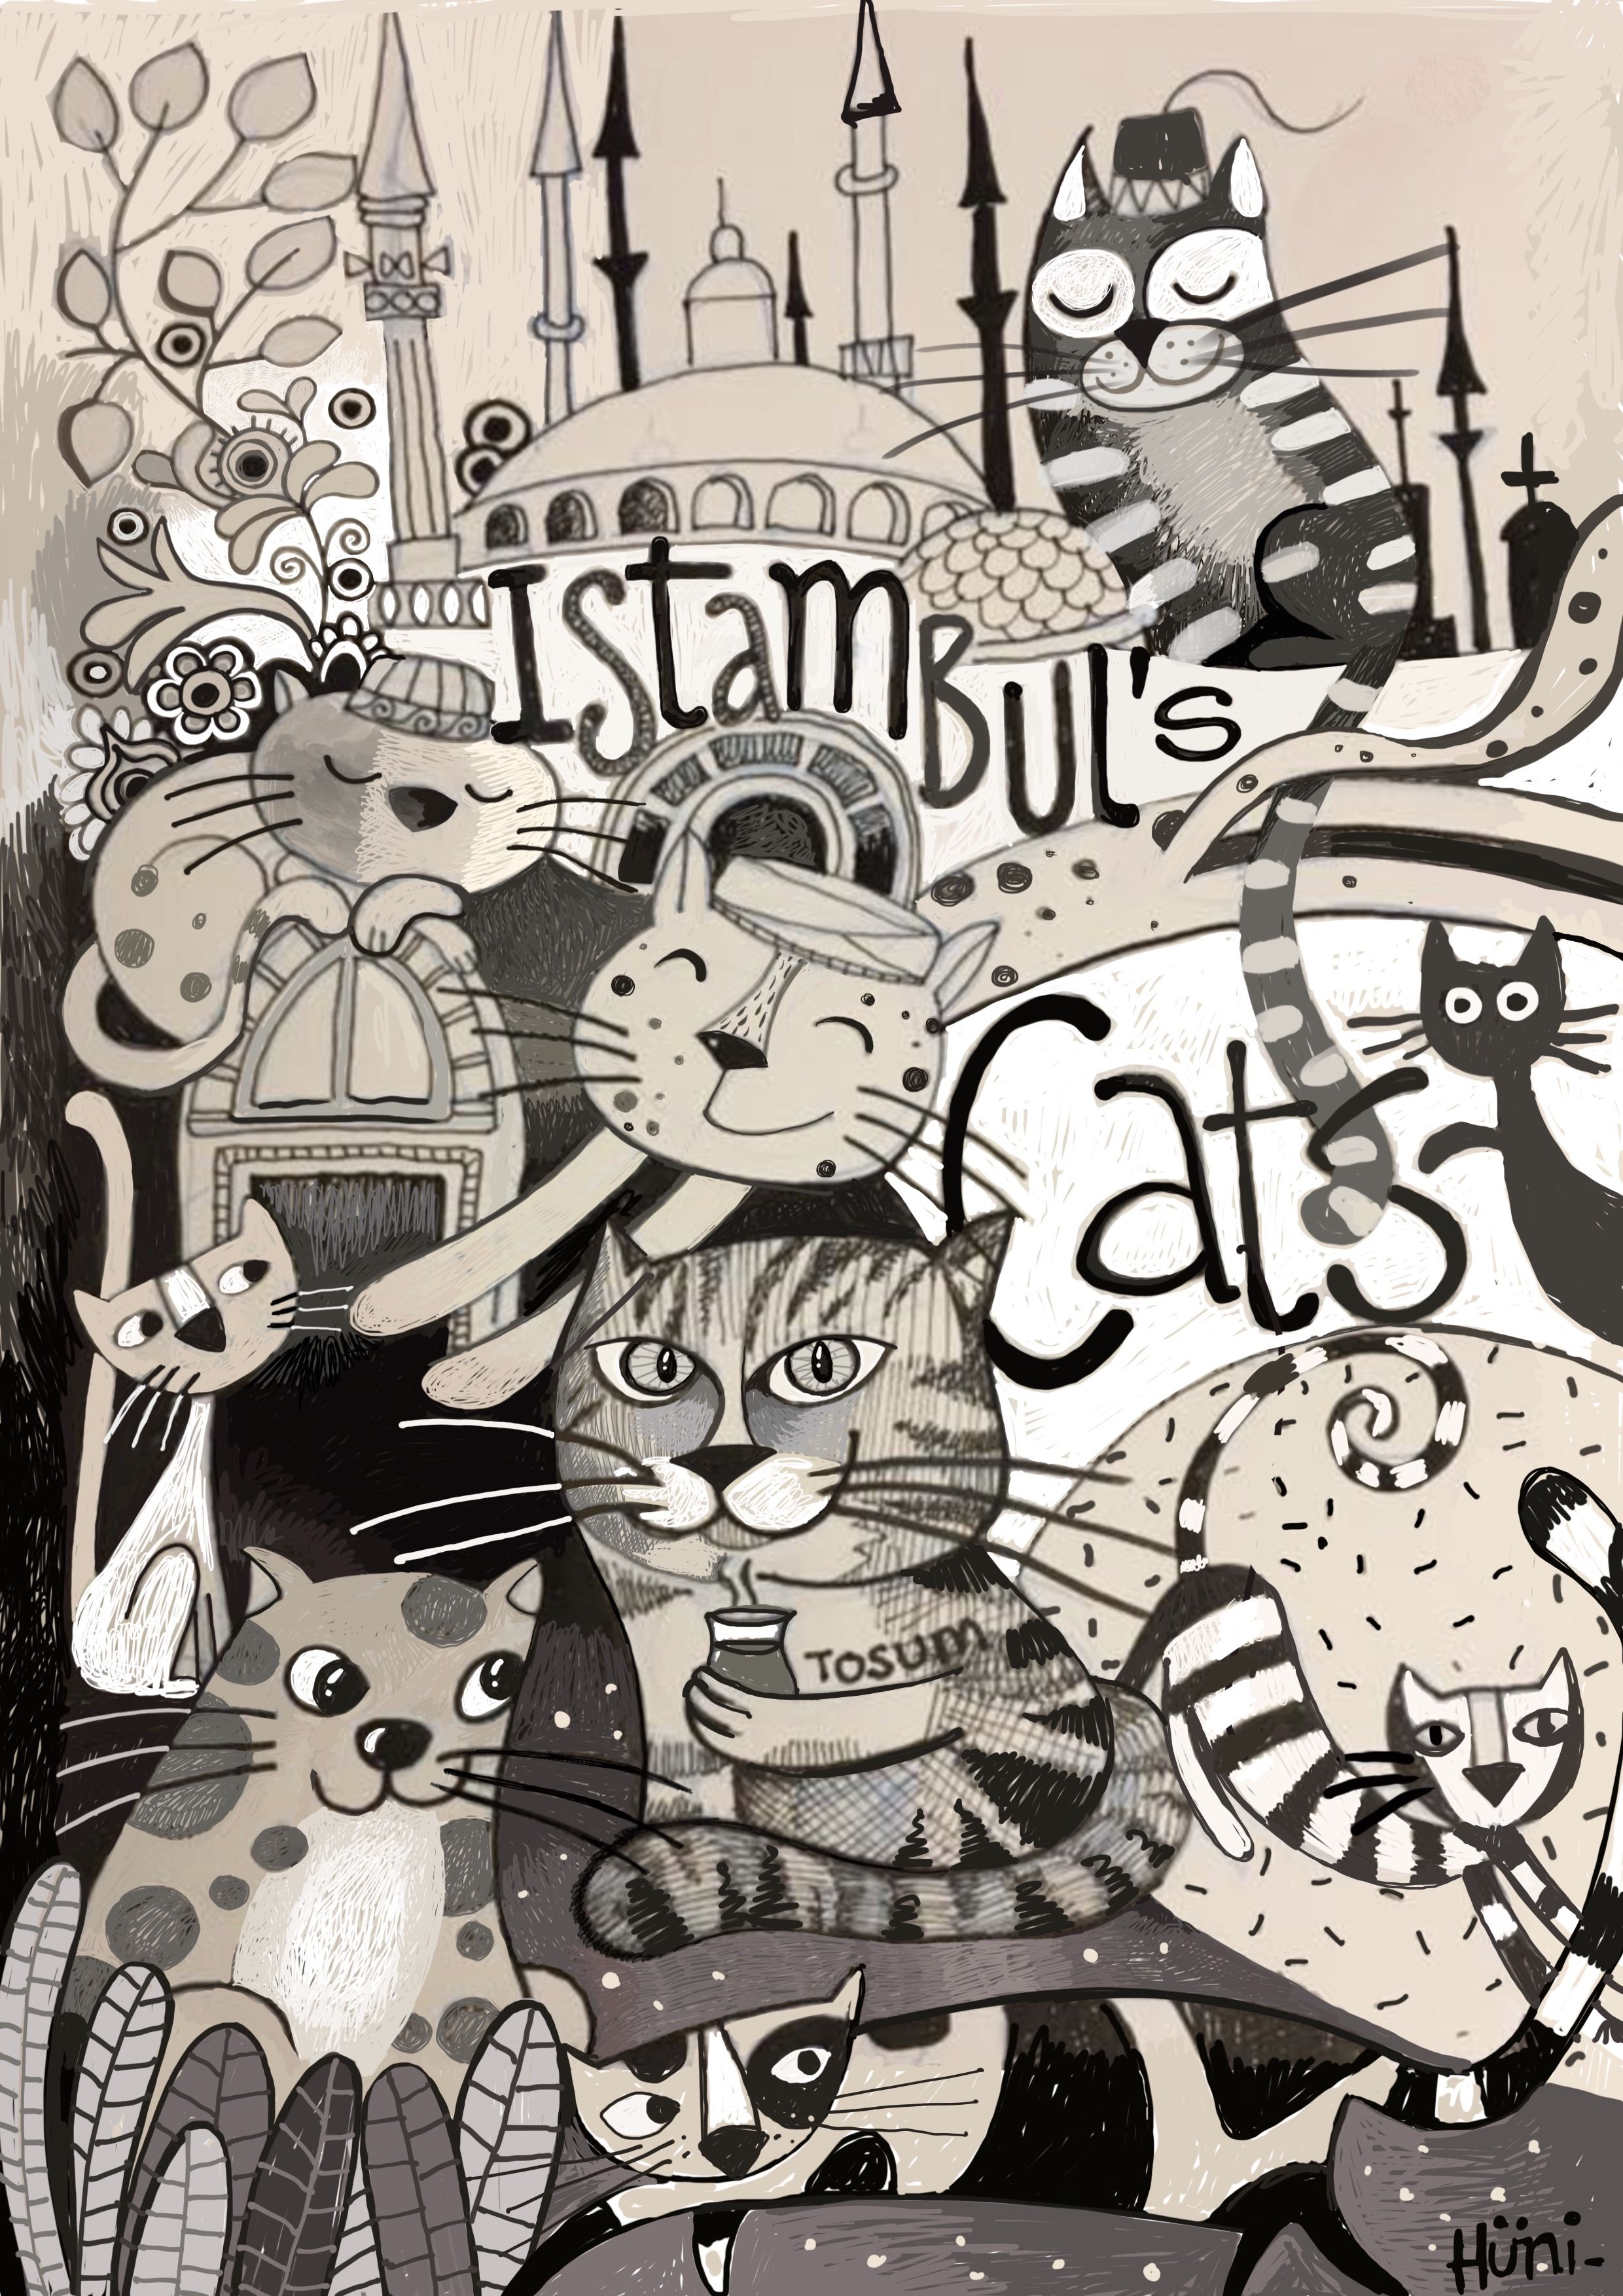 Istambul S Cats B W By Ines H Ni Cats Kittens Painting  # Muebles Nelly Maria